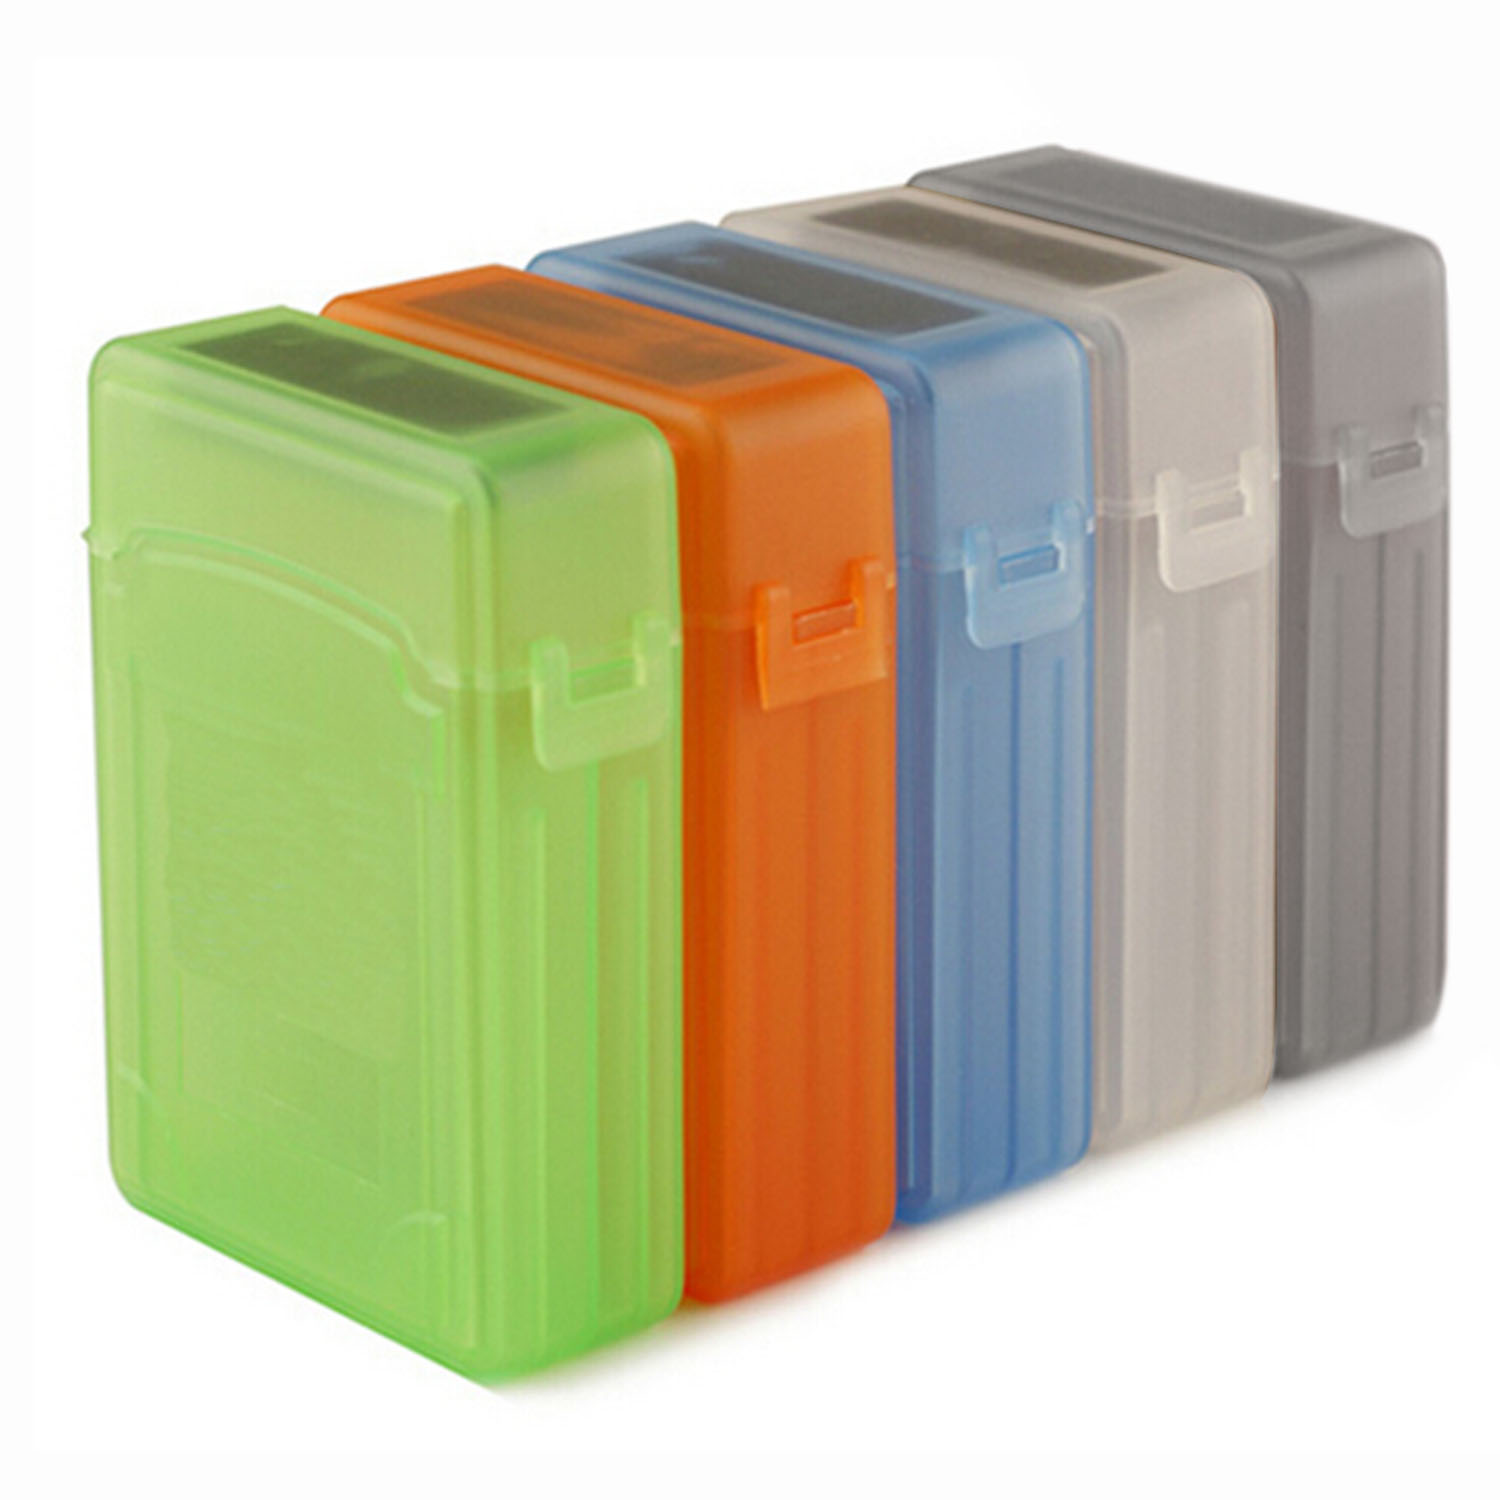 2.5 inch IDE SATA HDD caddy Case external Hard Drive Disk Storage Box For ssd Hdd enclosure Cases Shock optibay Multi Color(China (Mainland))